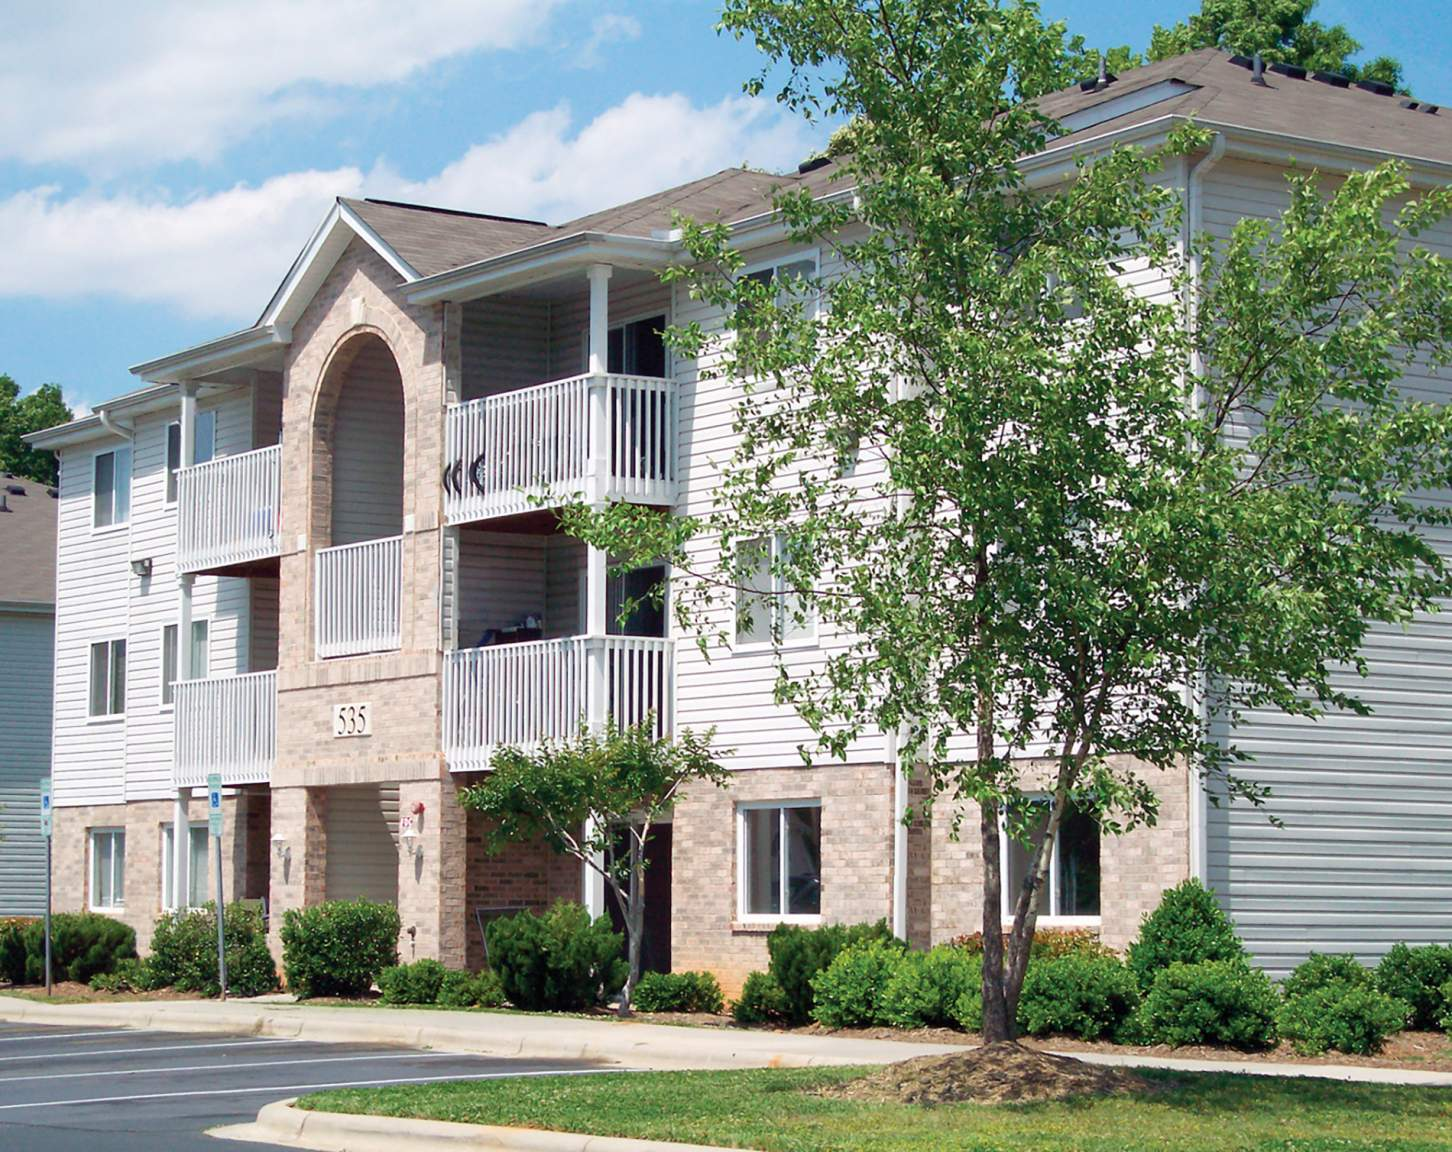 Phoenix ApartmentComplex for Rent in Hickory